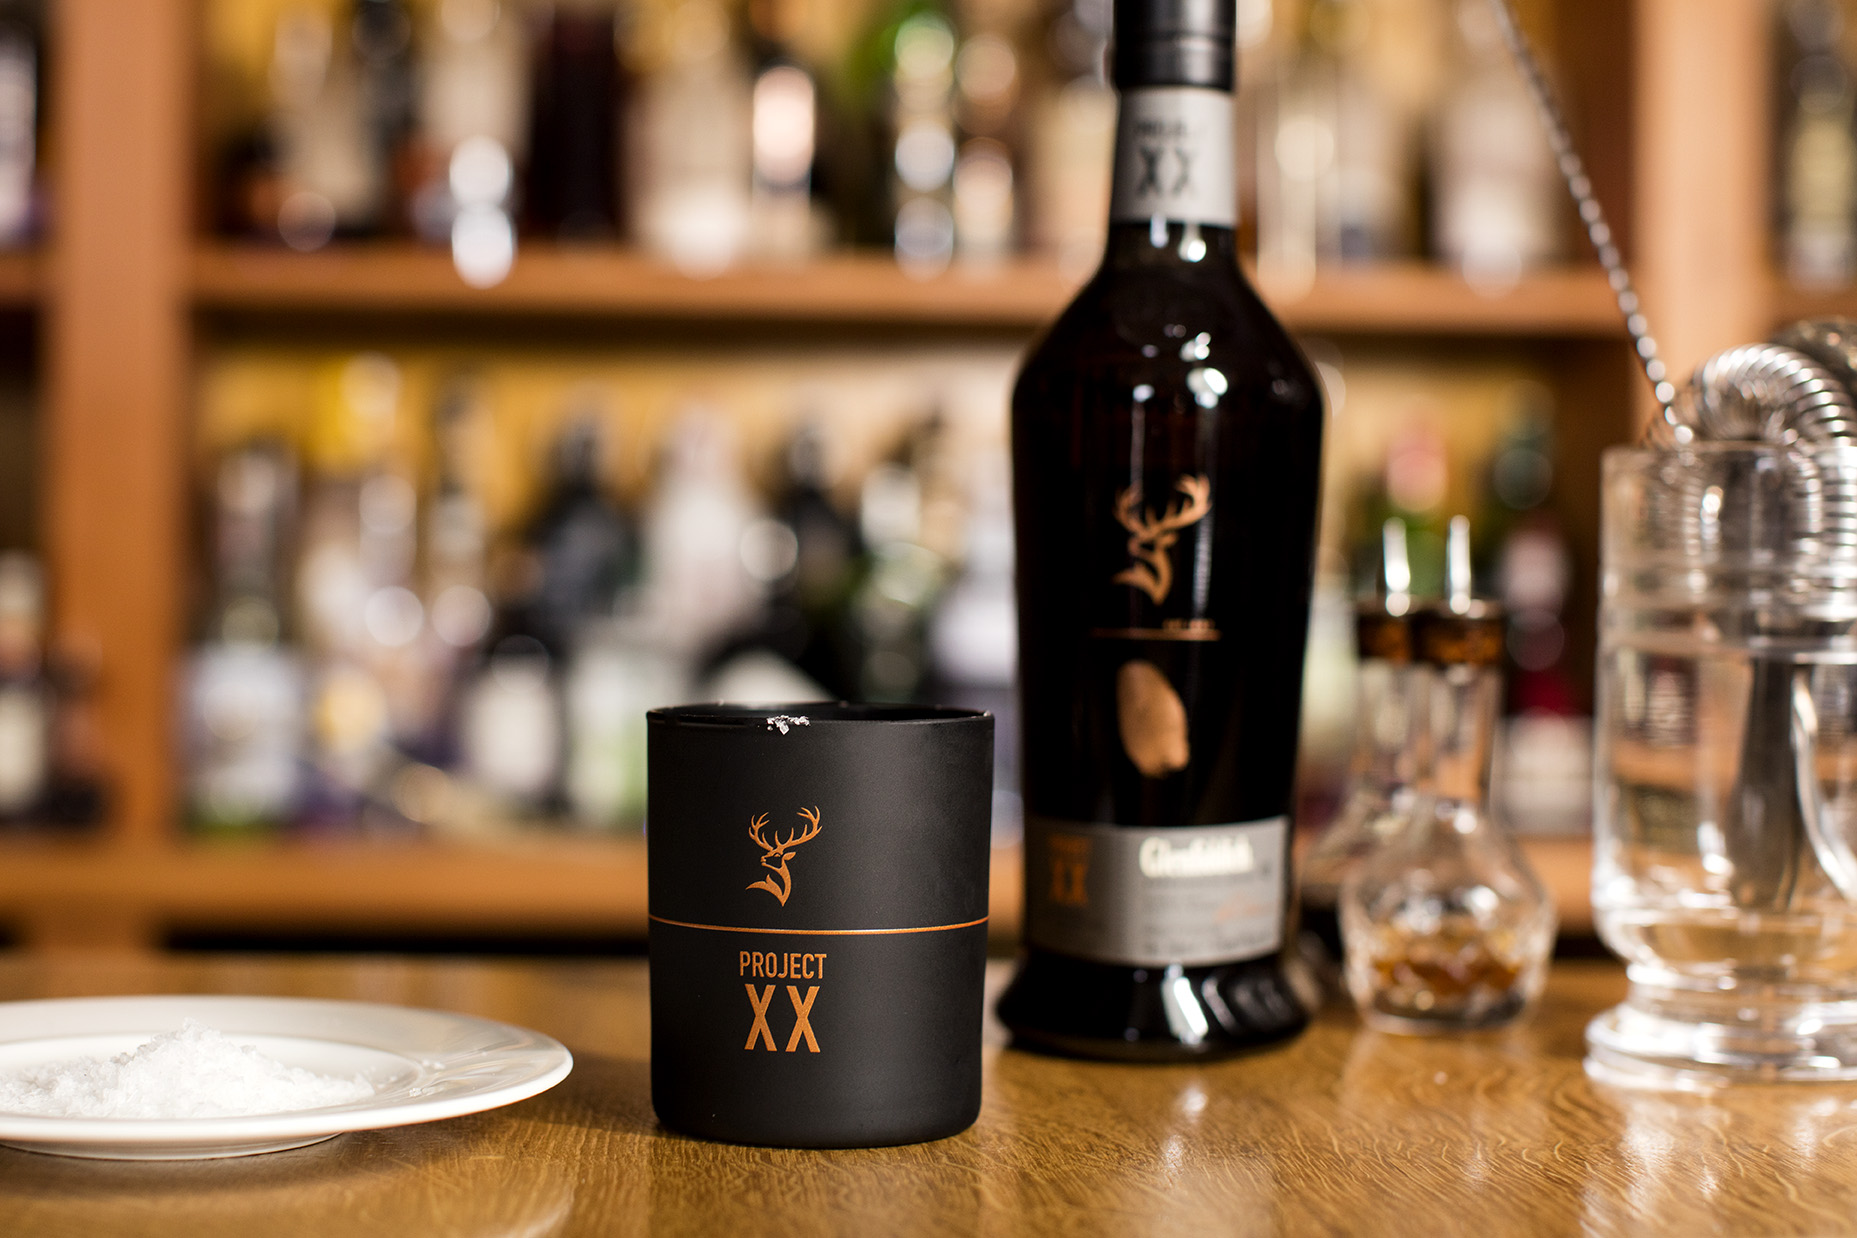 Glenfiddich Project Xx Sports Multiple Personalities In One Single Malt photo